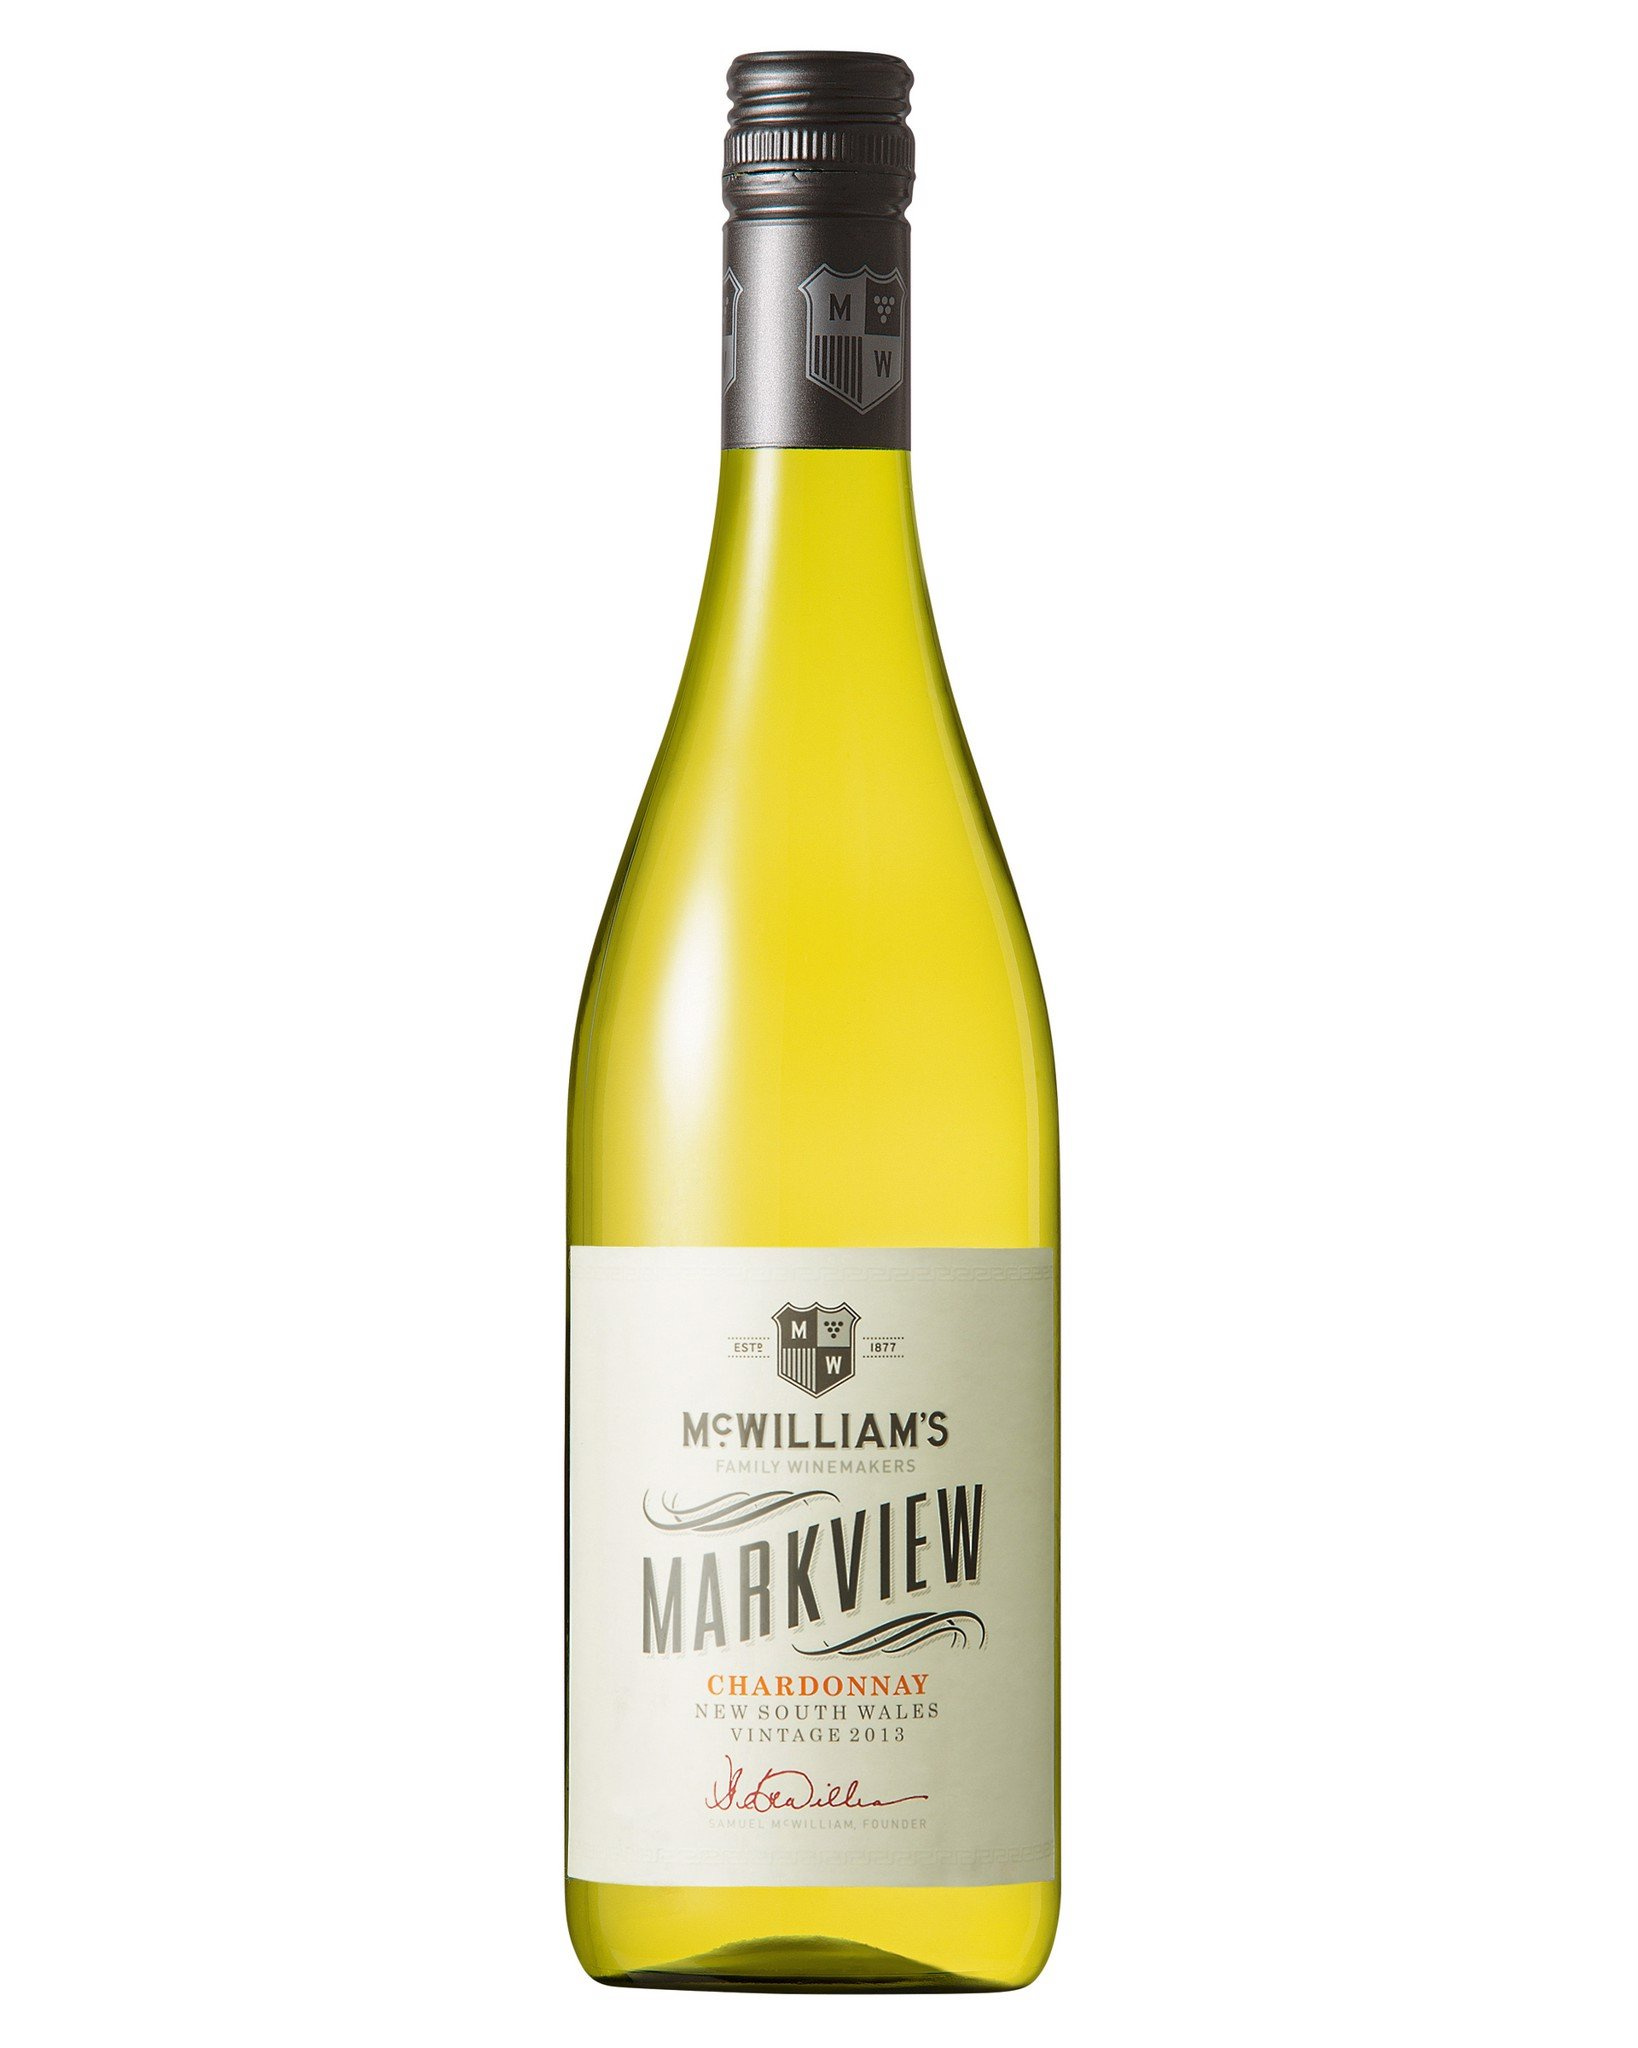 McWilliam's Markview Chardonnay NV